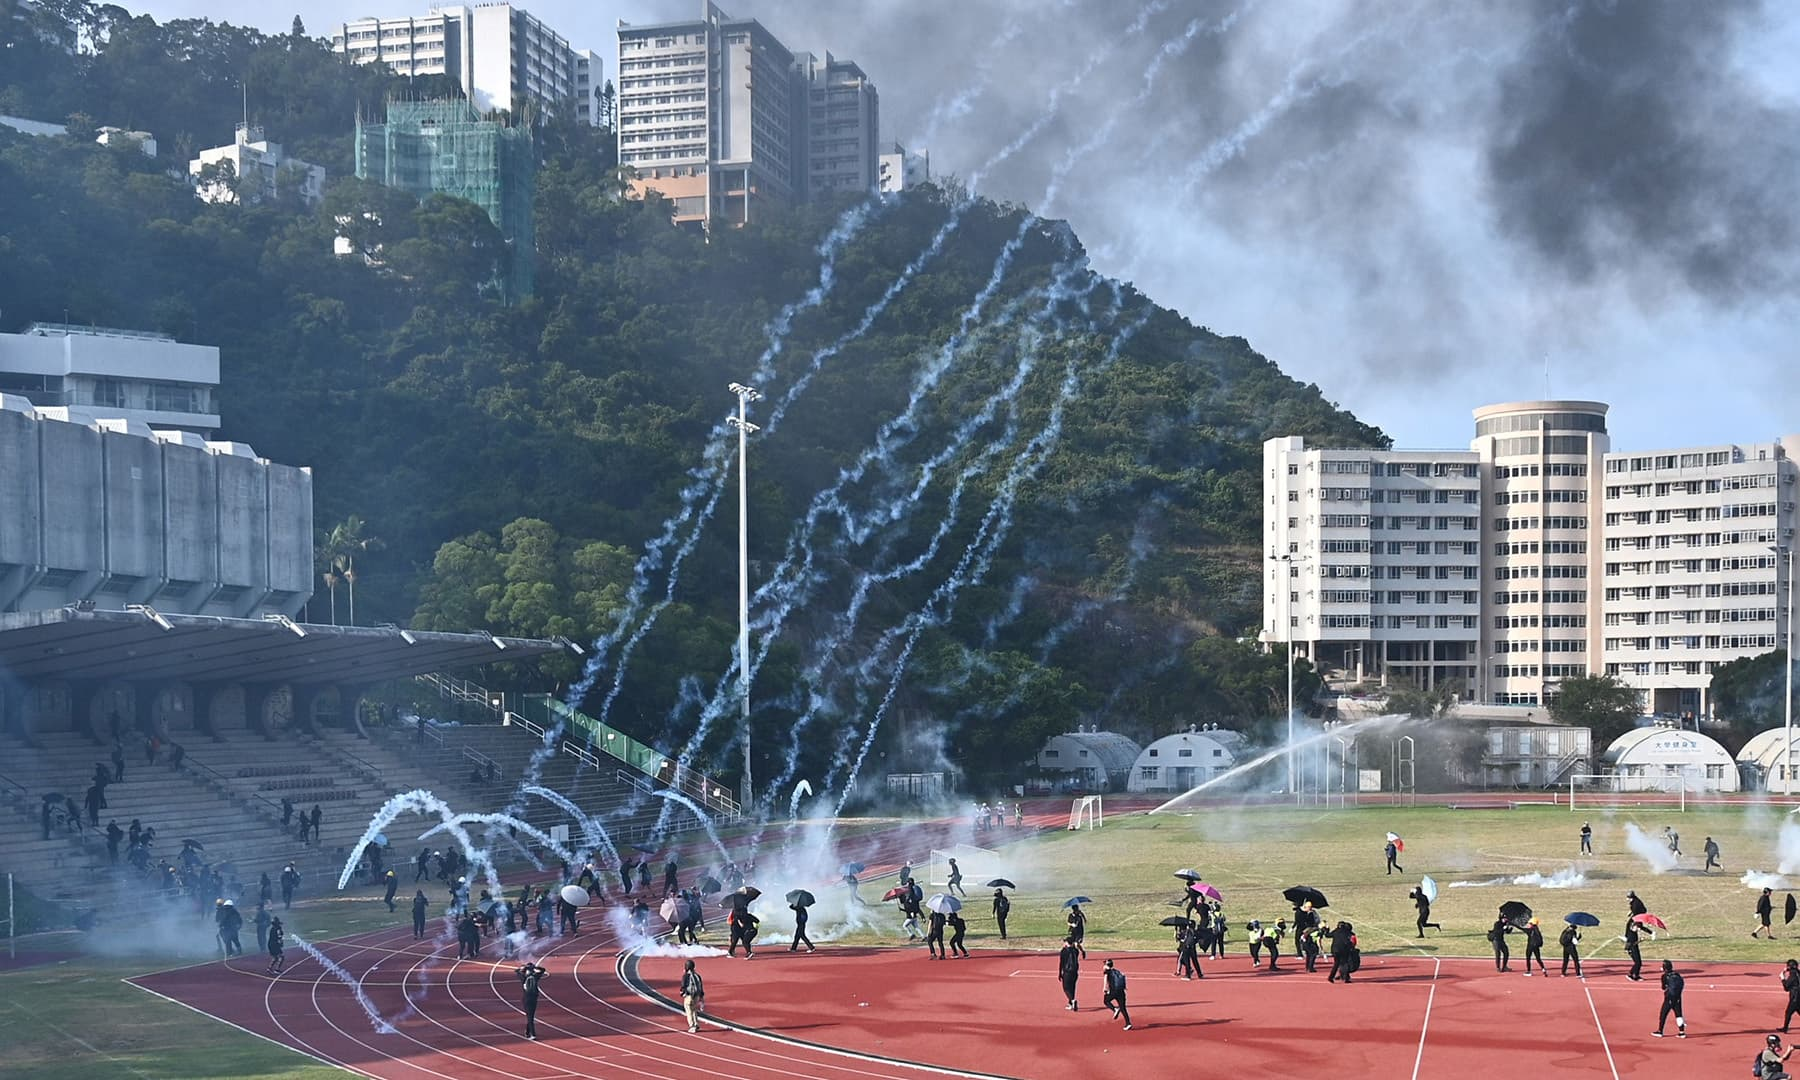 Protesters react after police fired tear gas at the Chinese University of Hong Kong (CUHK), in Hong Kong on November 12. — AFP